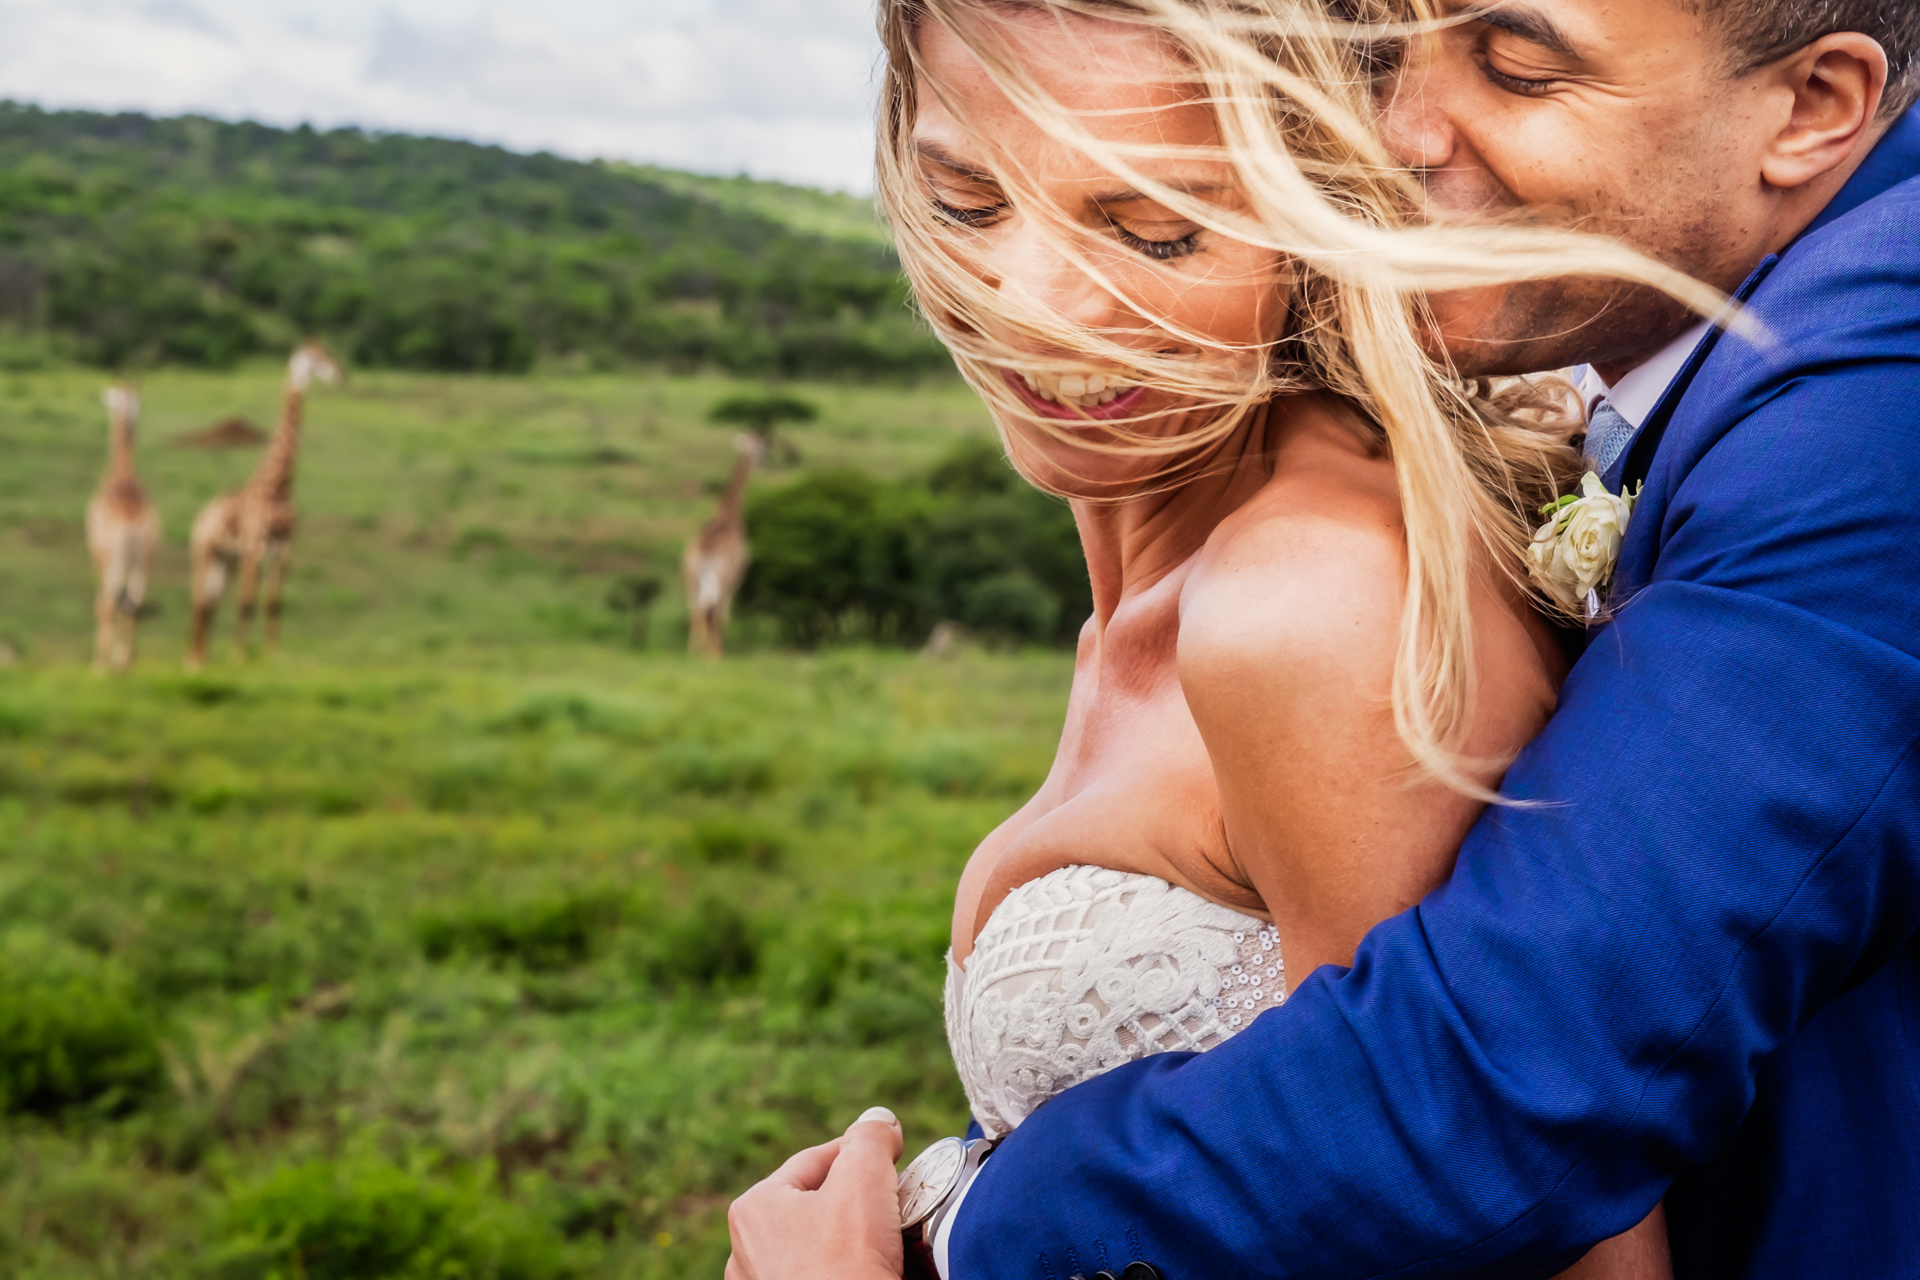 The stormy weather after the thunderstorm created beautiful moody weather for the couple's quick photo shoot in the African safari with wildlife in the background at Nambiti Hills, KwaZulu Natal Midlands, South Africa